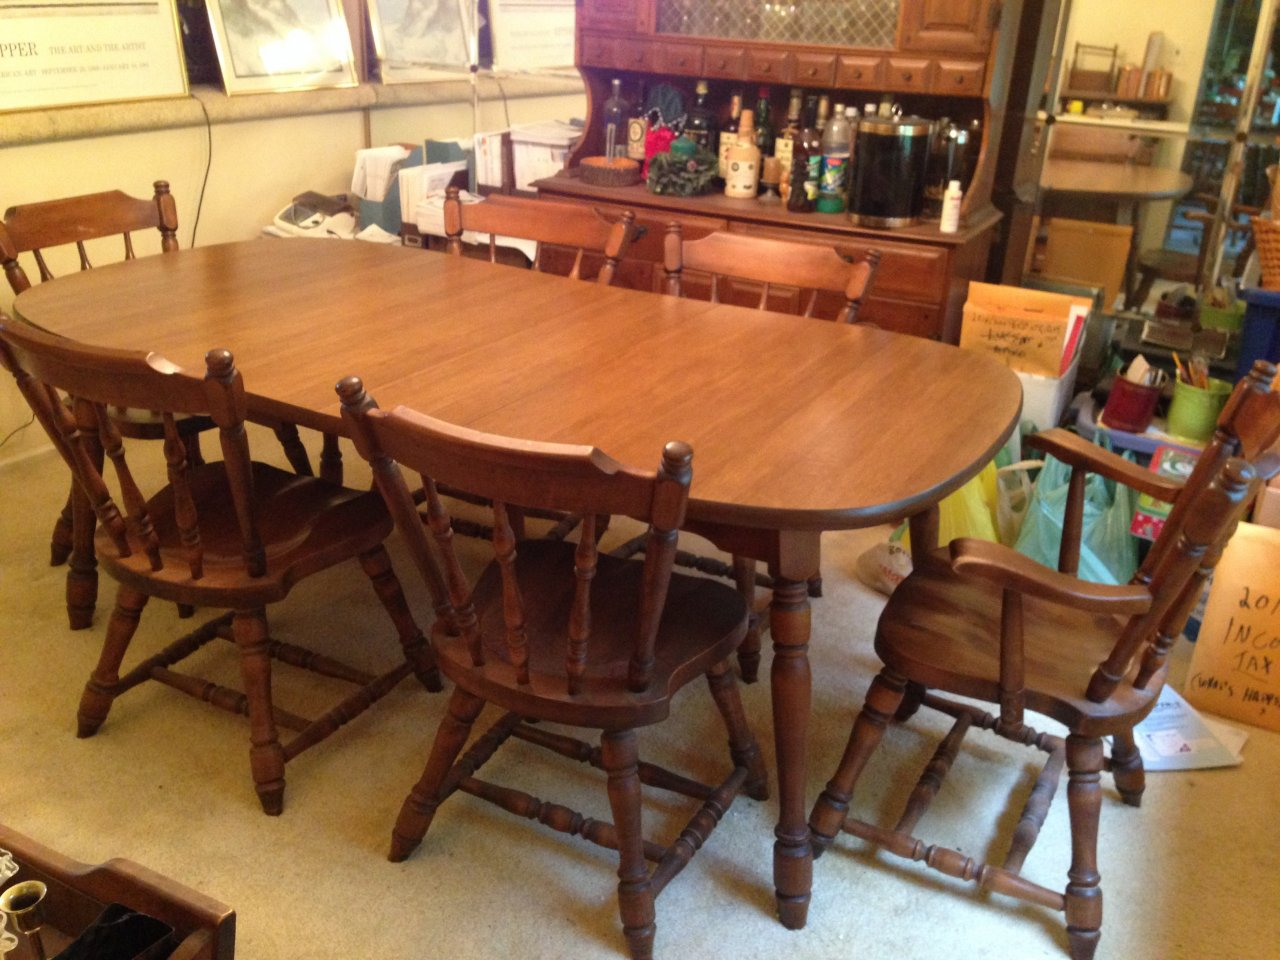 Plymouth Side Chairs And 2 Arm In Vintage Finish Any Idea Of The Value It Is A Beautiful Set That Was Most Likely Purchased 1960s